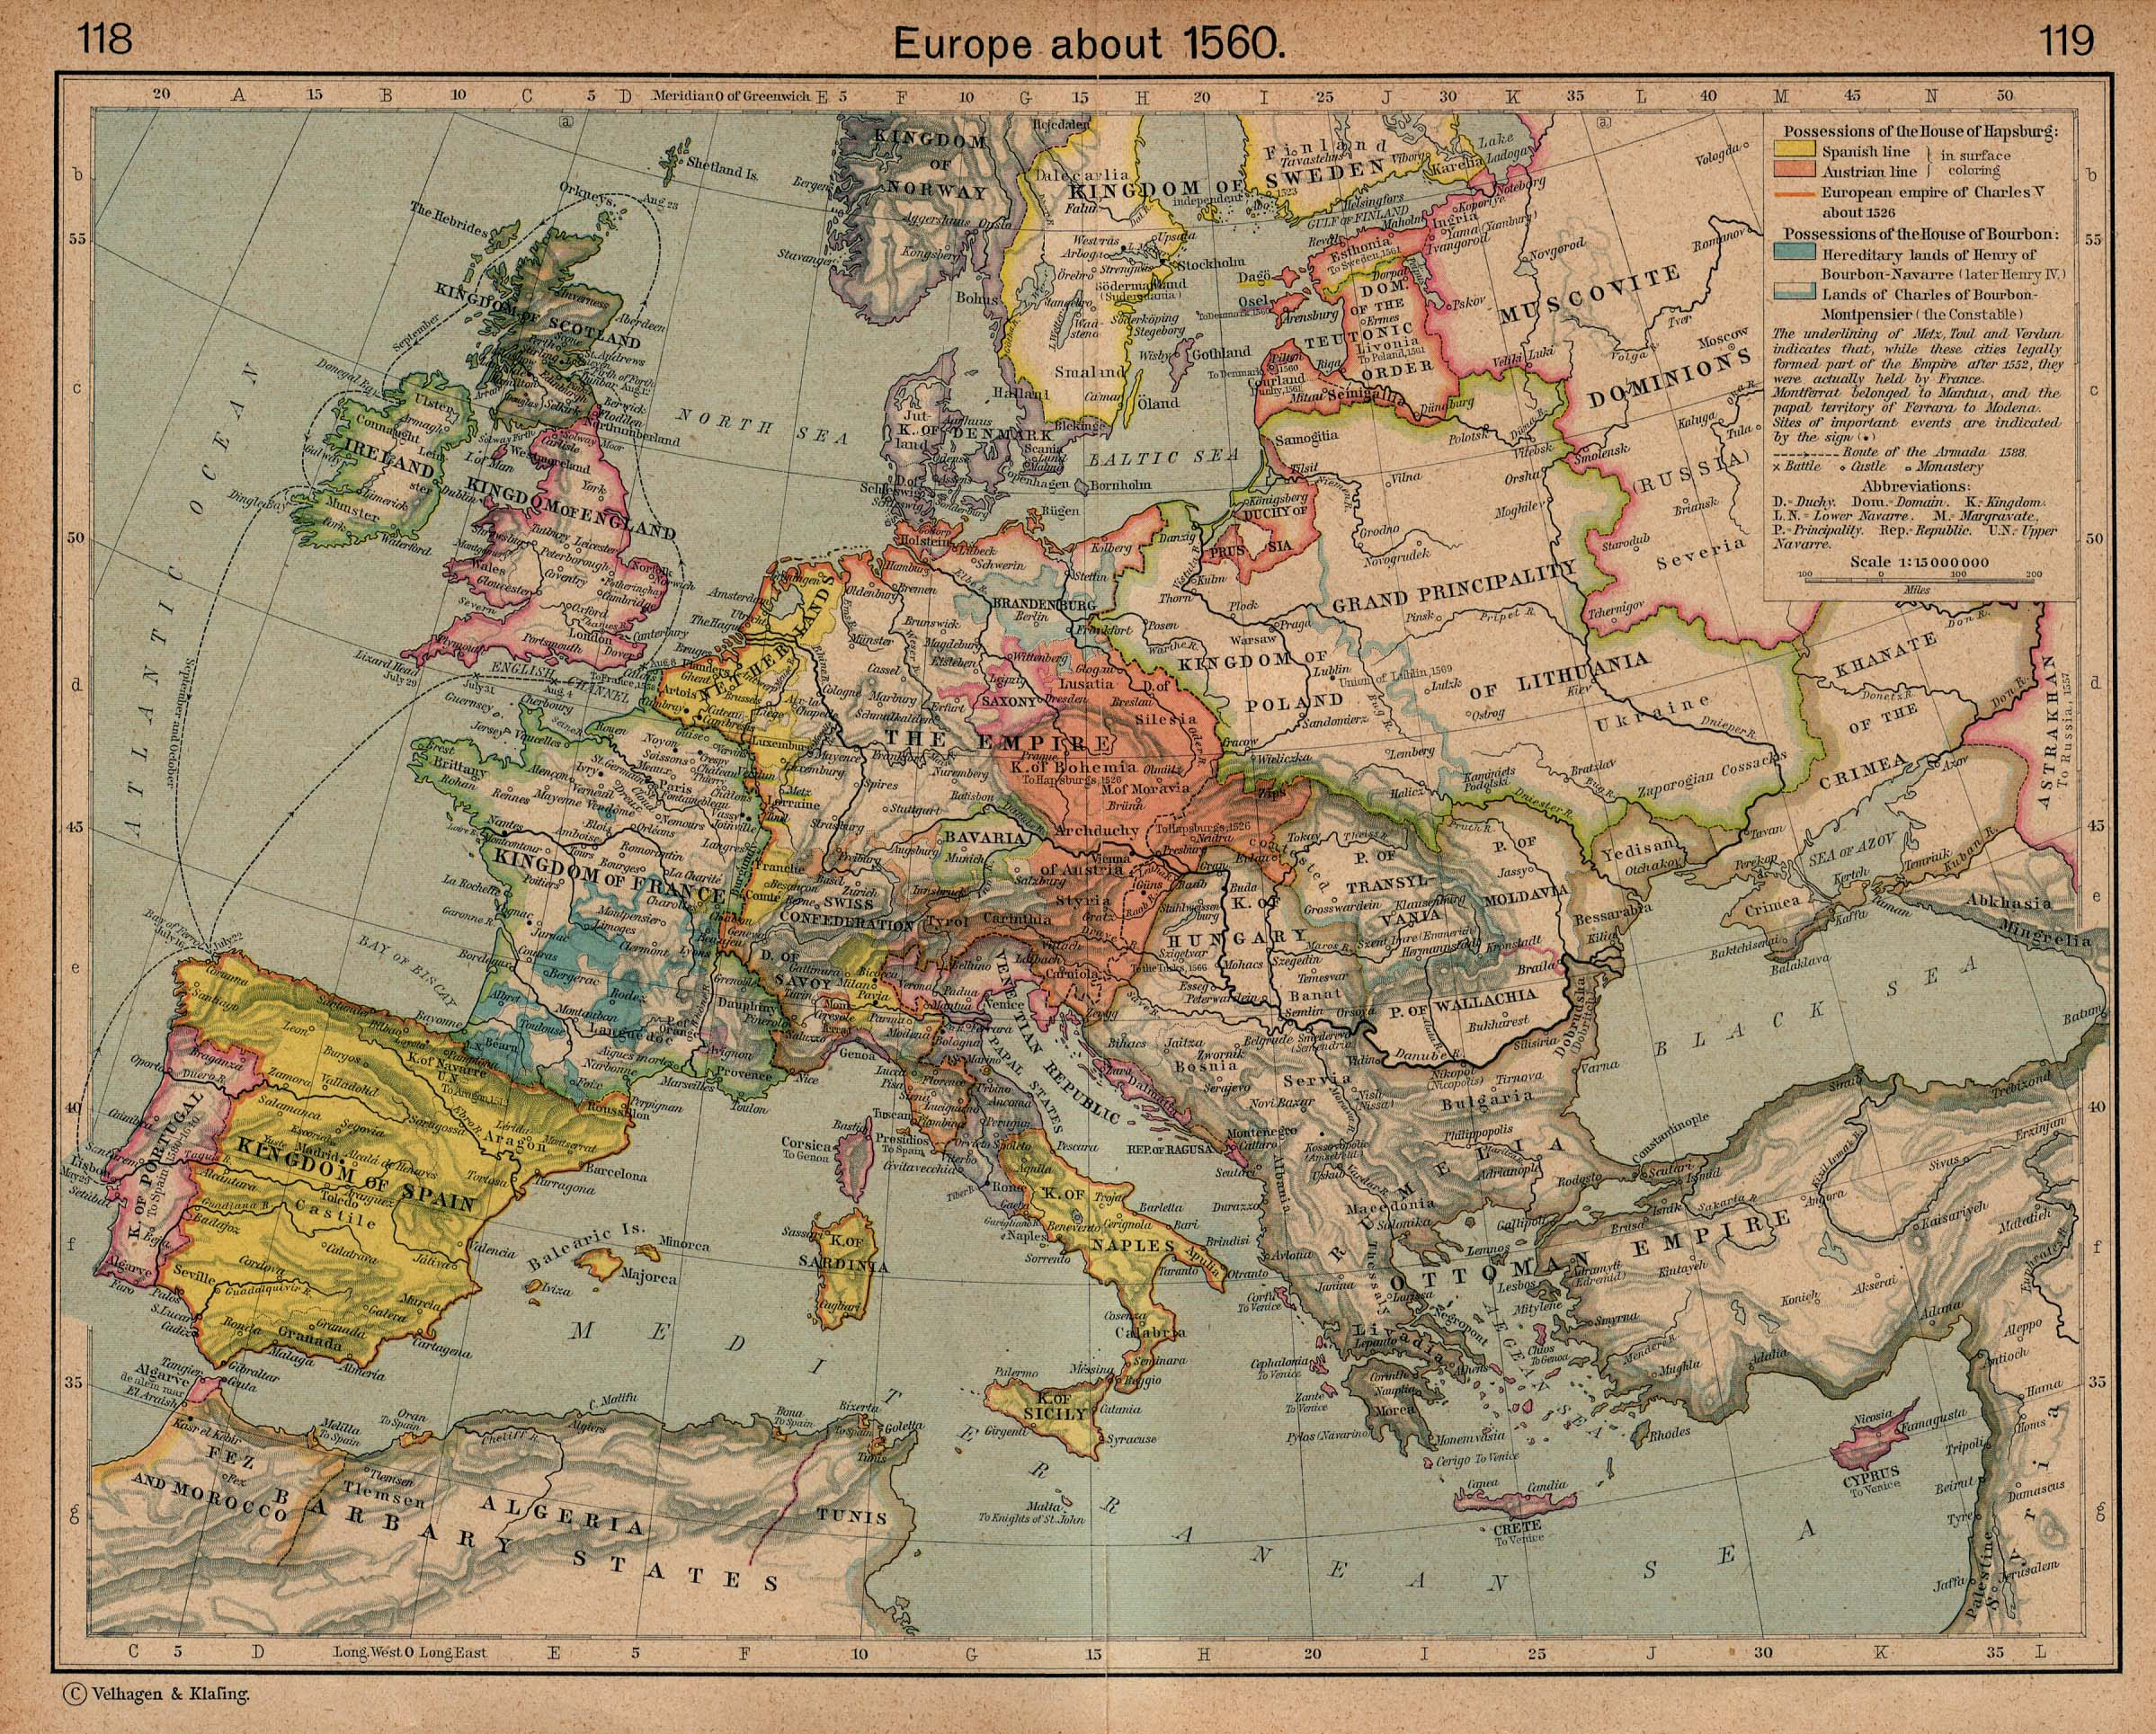 The Balkans Historical Maps   Perry Casta    eda Map Collection   UT     Europe about 1560  includes Balkans   941K   Map